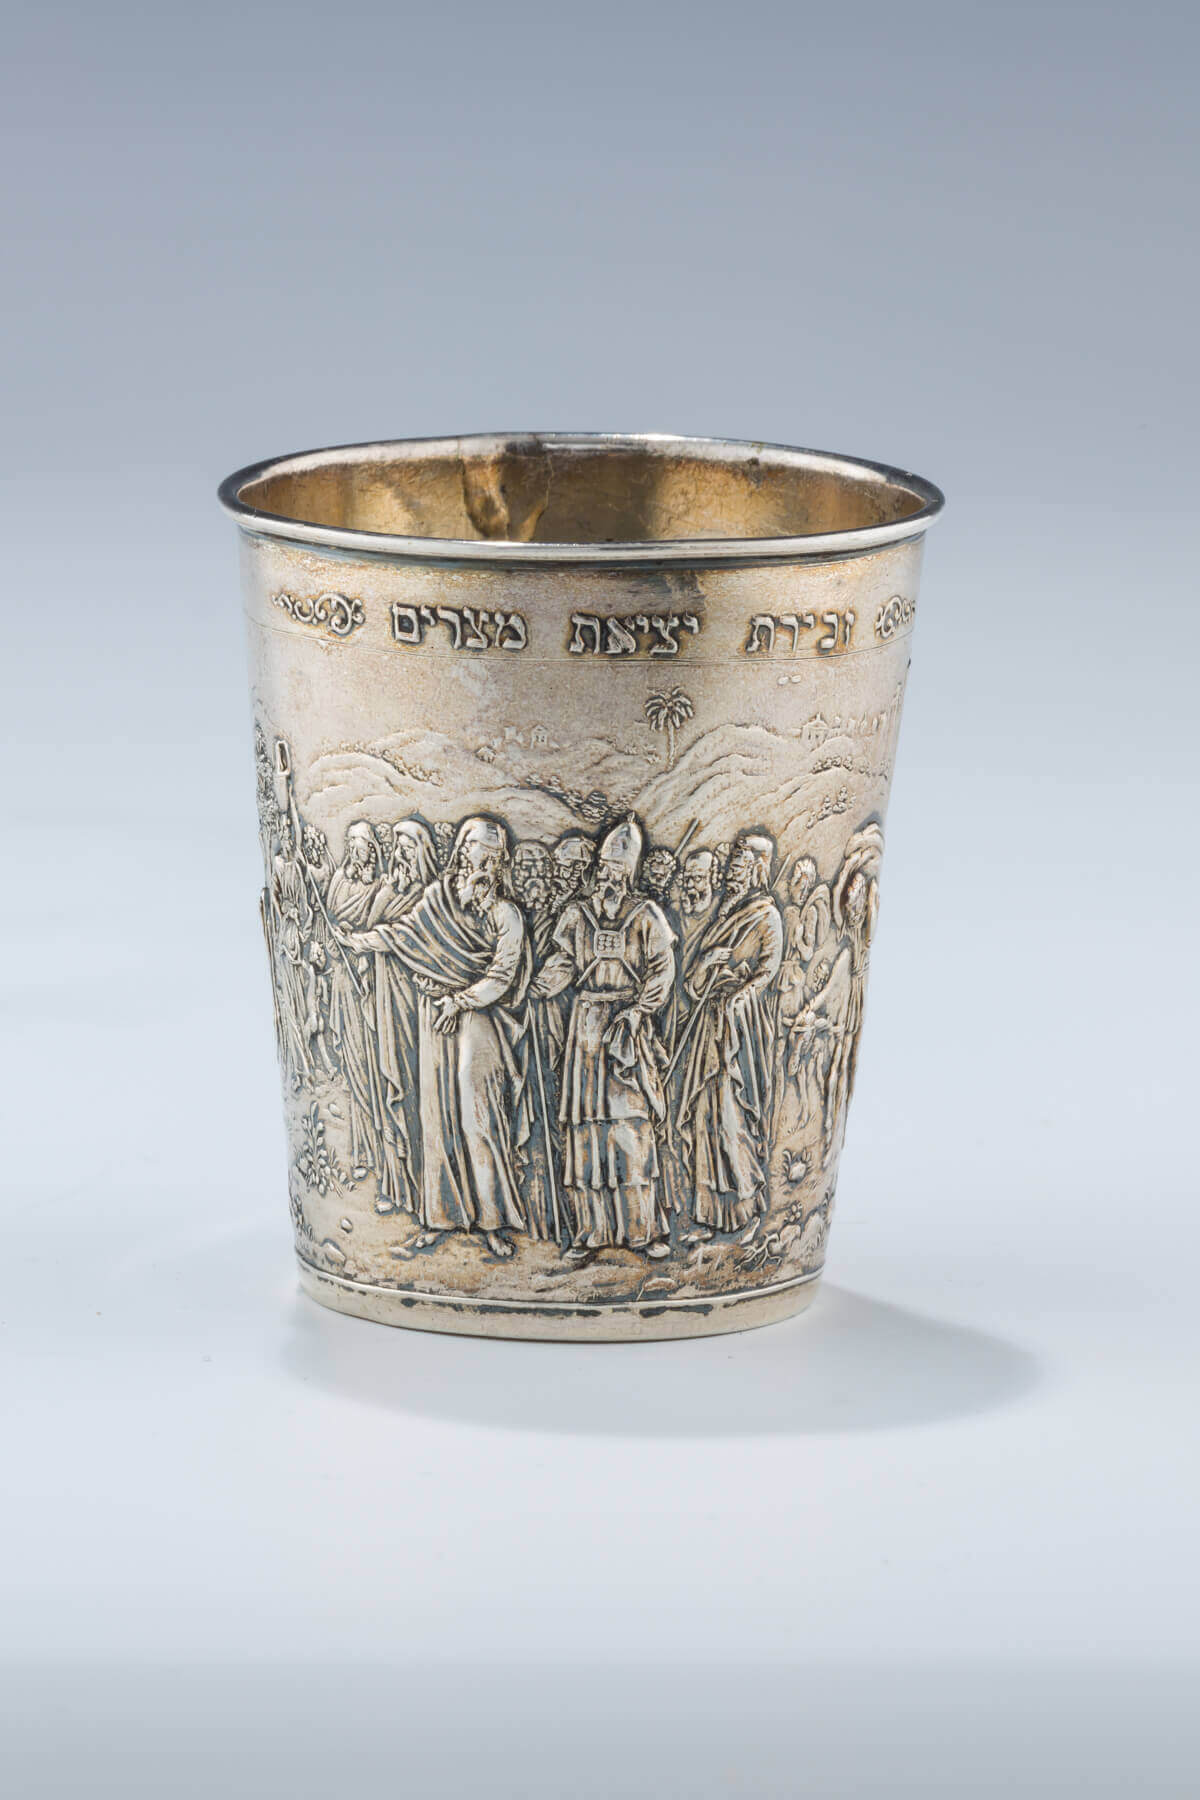 098. A SILVER PASSOVER CUP